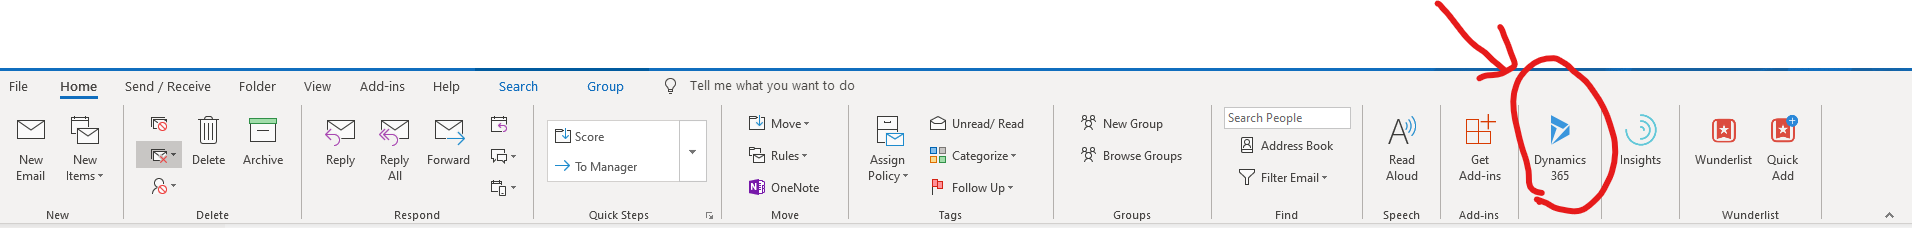 add contacts and leads 1 Increase Productivity with Dynamics 365 App for Outlook